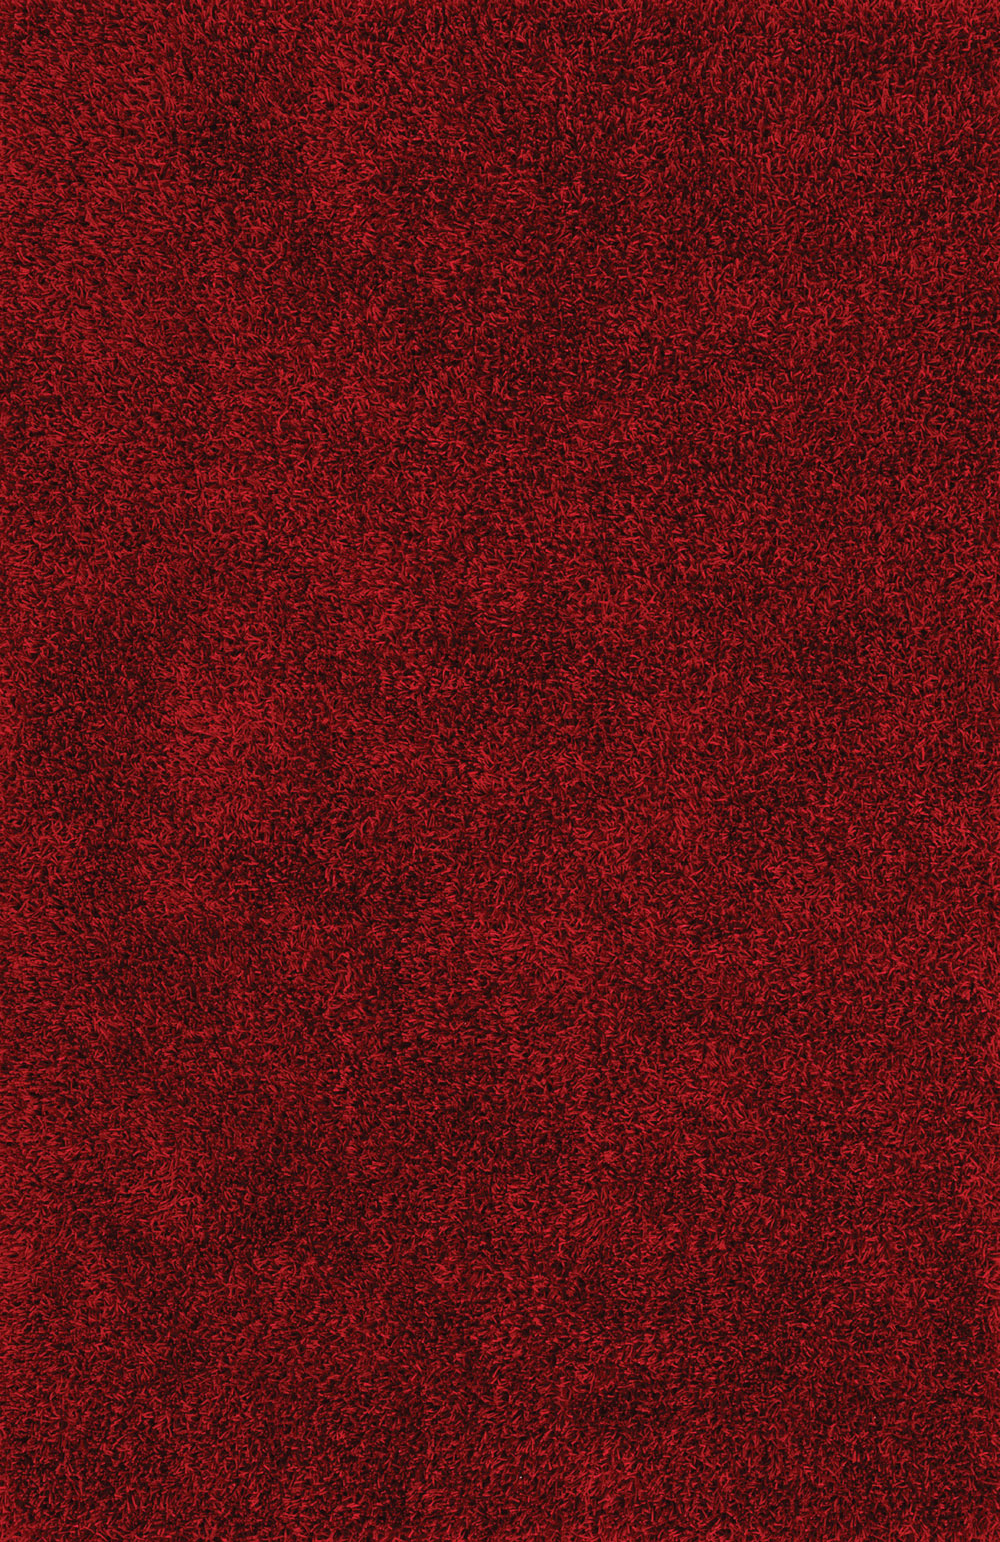 Dalyn Illusions IL69 Red Rug